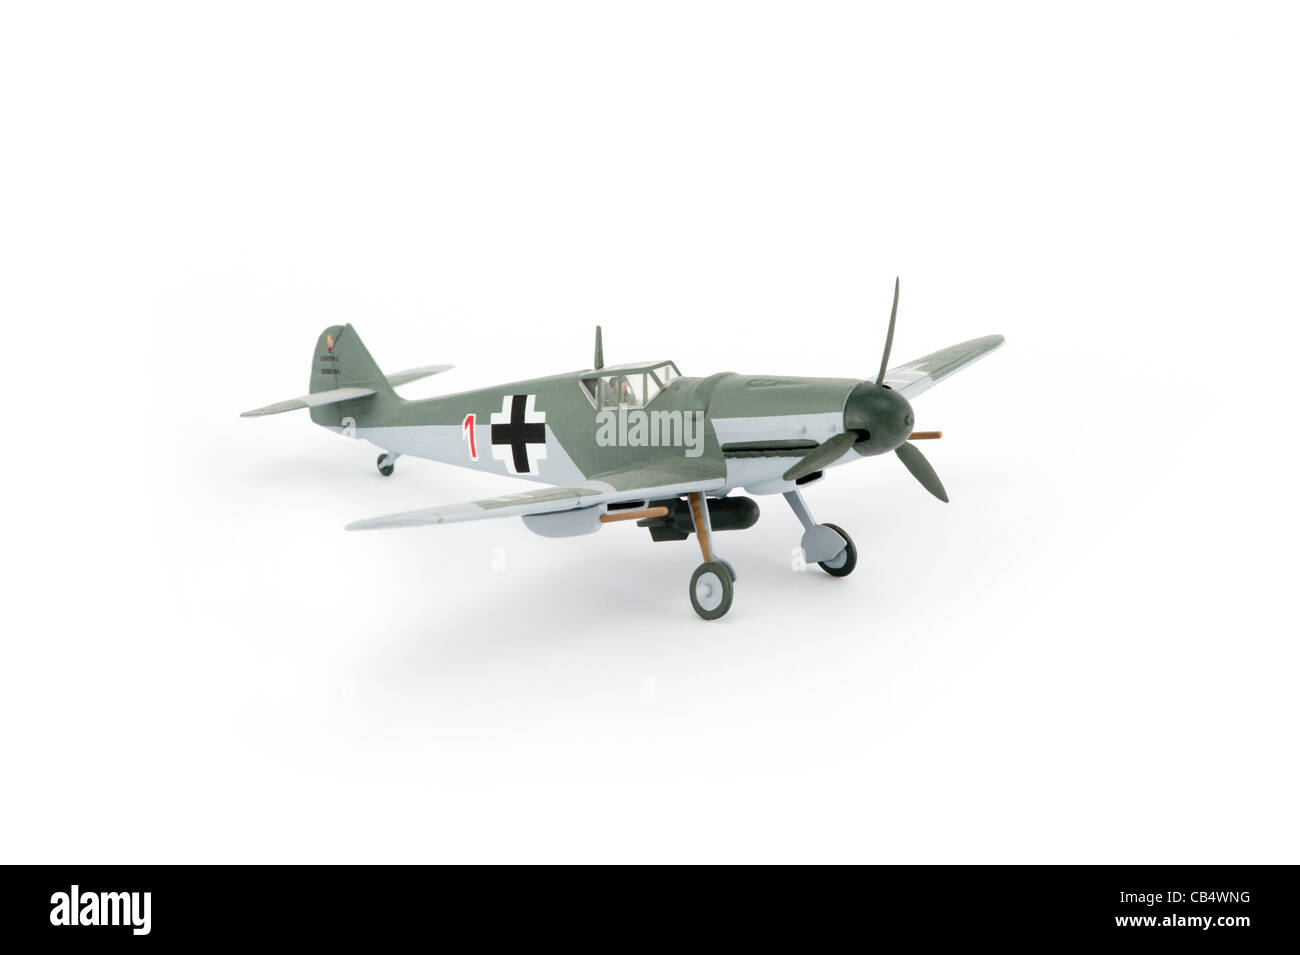 A scale model of a Messerschmitt Bf 109 shot as a cut-out against a white studio background. - Stock Image